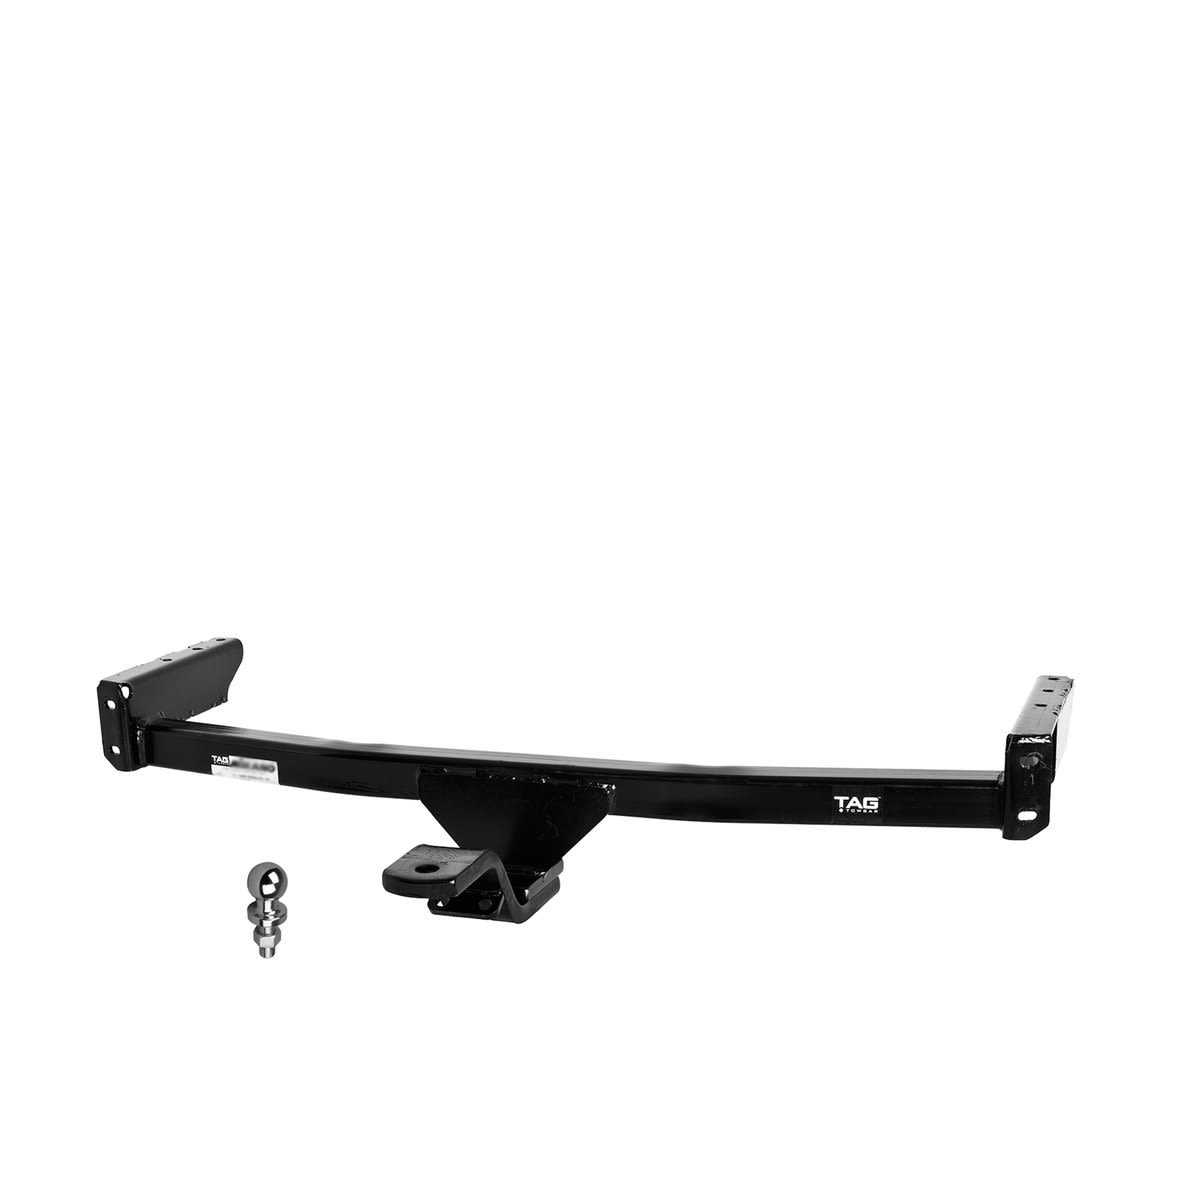 TAG Light Duty Towbar to suit Ford Fairlane (08/1988 - 02/1995), LTD (08/1988 - 02/1995) - No Wiring Harness